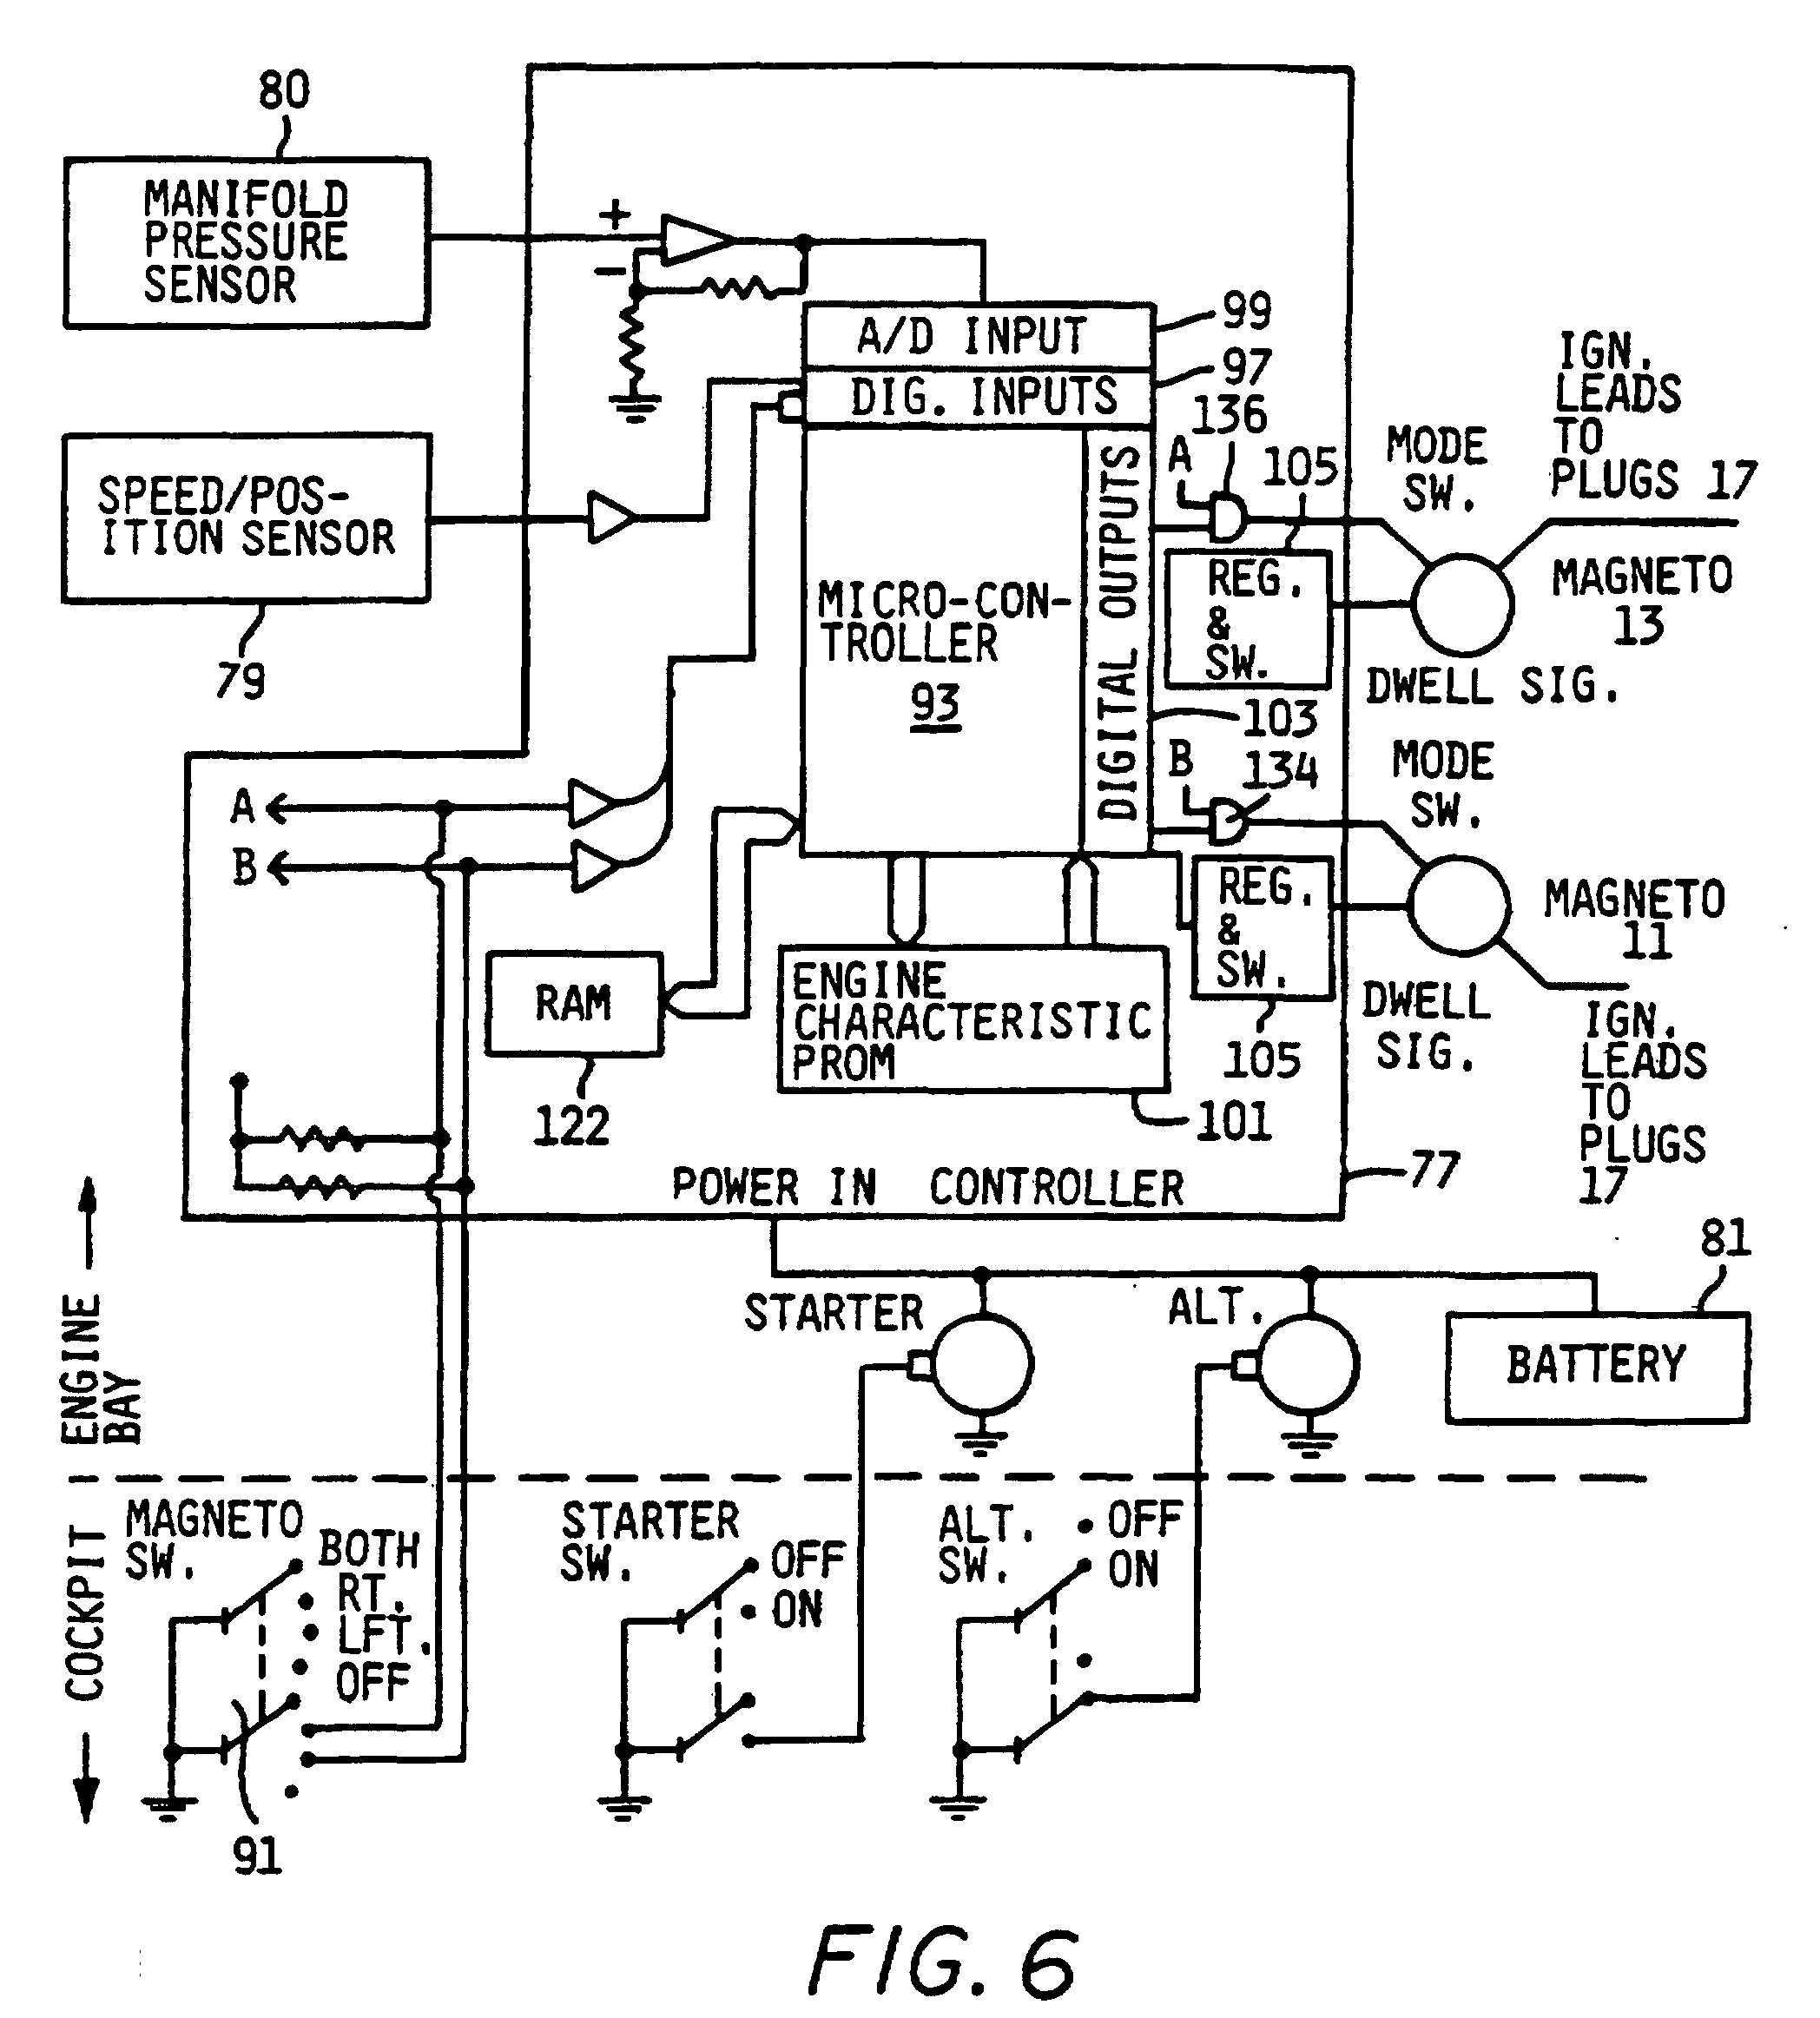 Magneto Wiring Diagram : Aircraft mag o ignition system wiring diagram magneto